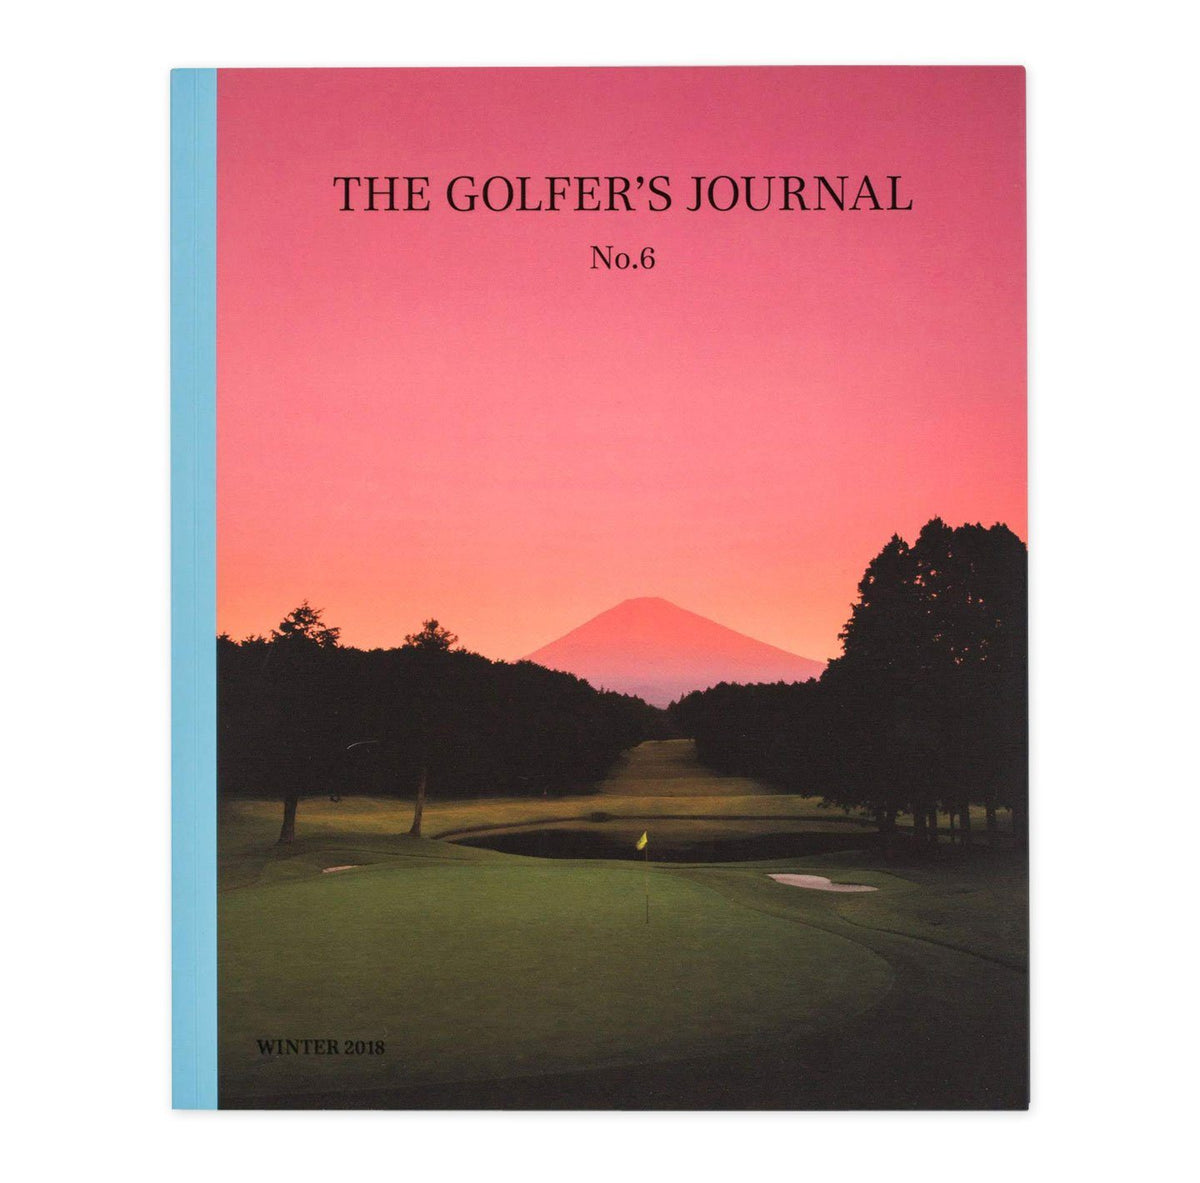 The Golfer's Journal #6